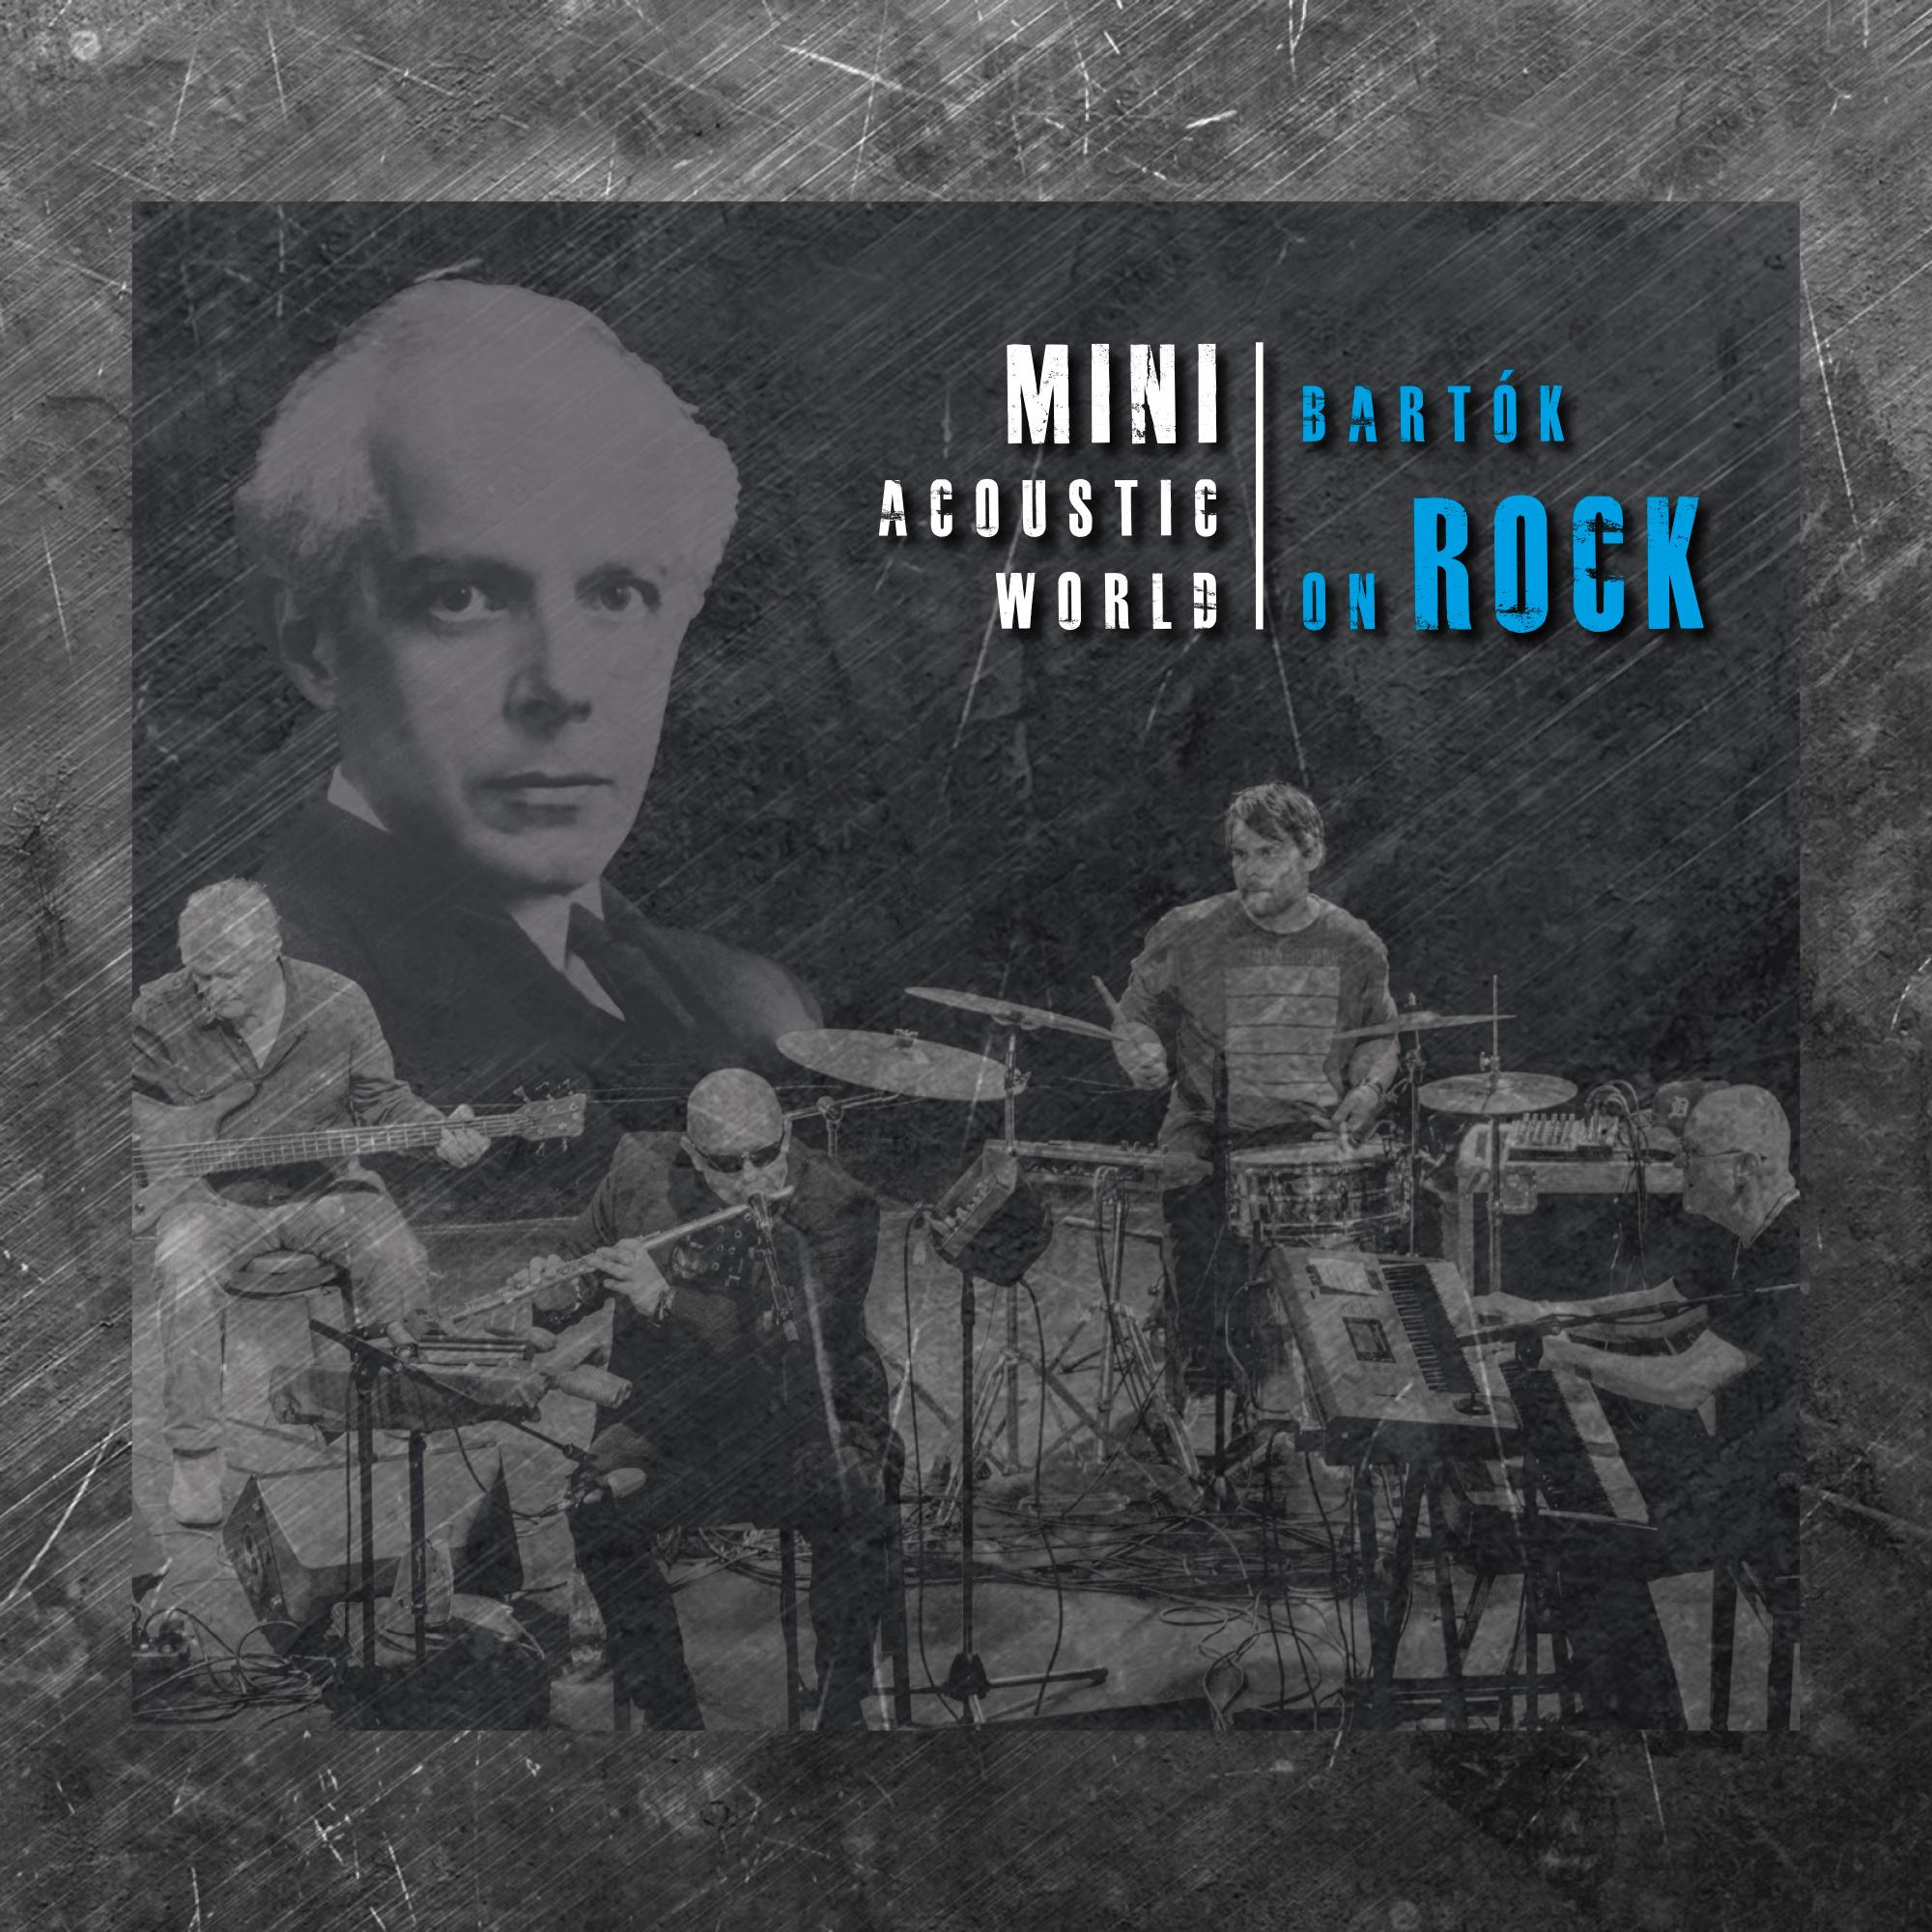 MINI - BARTÓK - MINI ACOUSTIC WORLD - BARTÓK ON ROCK - CD -